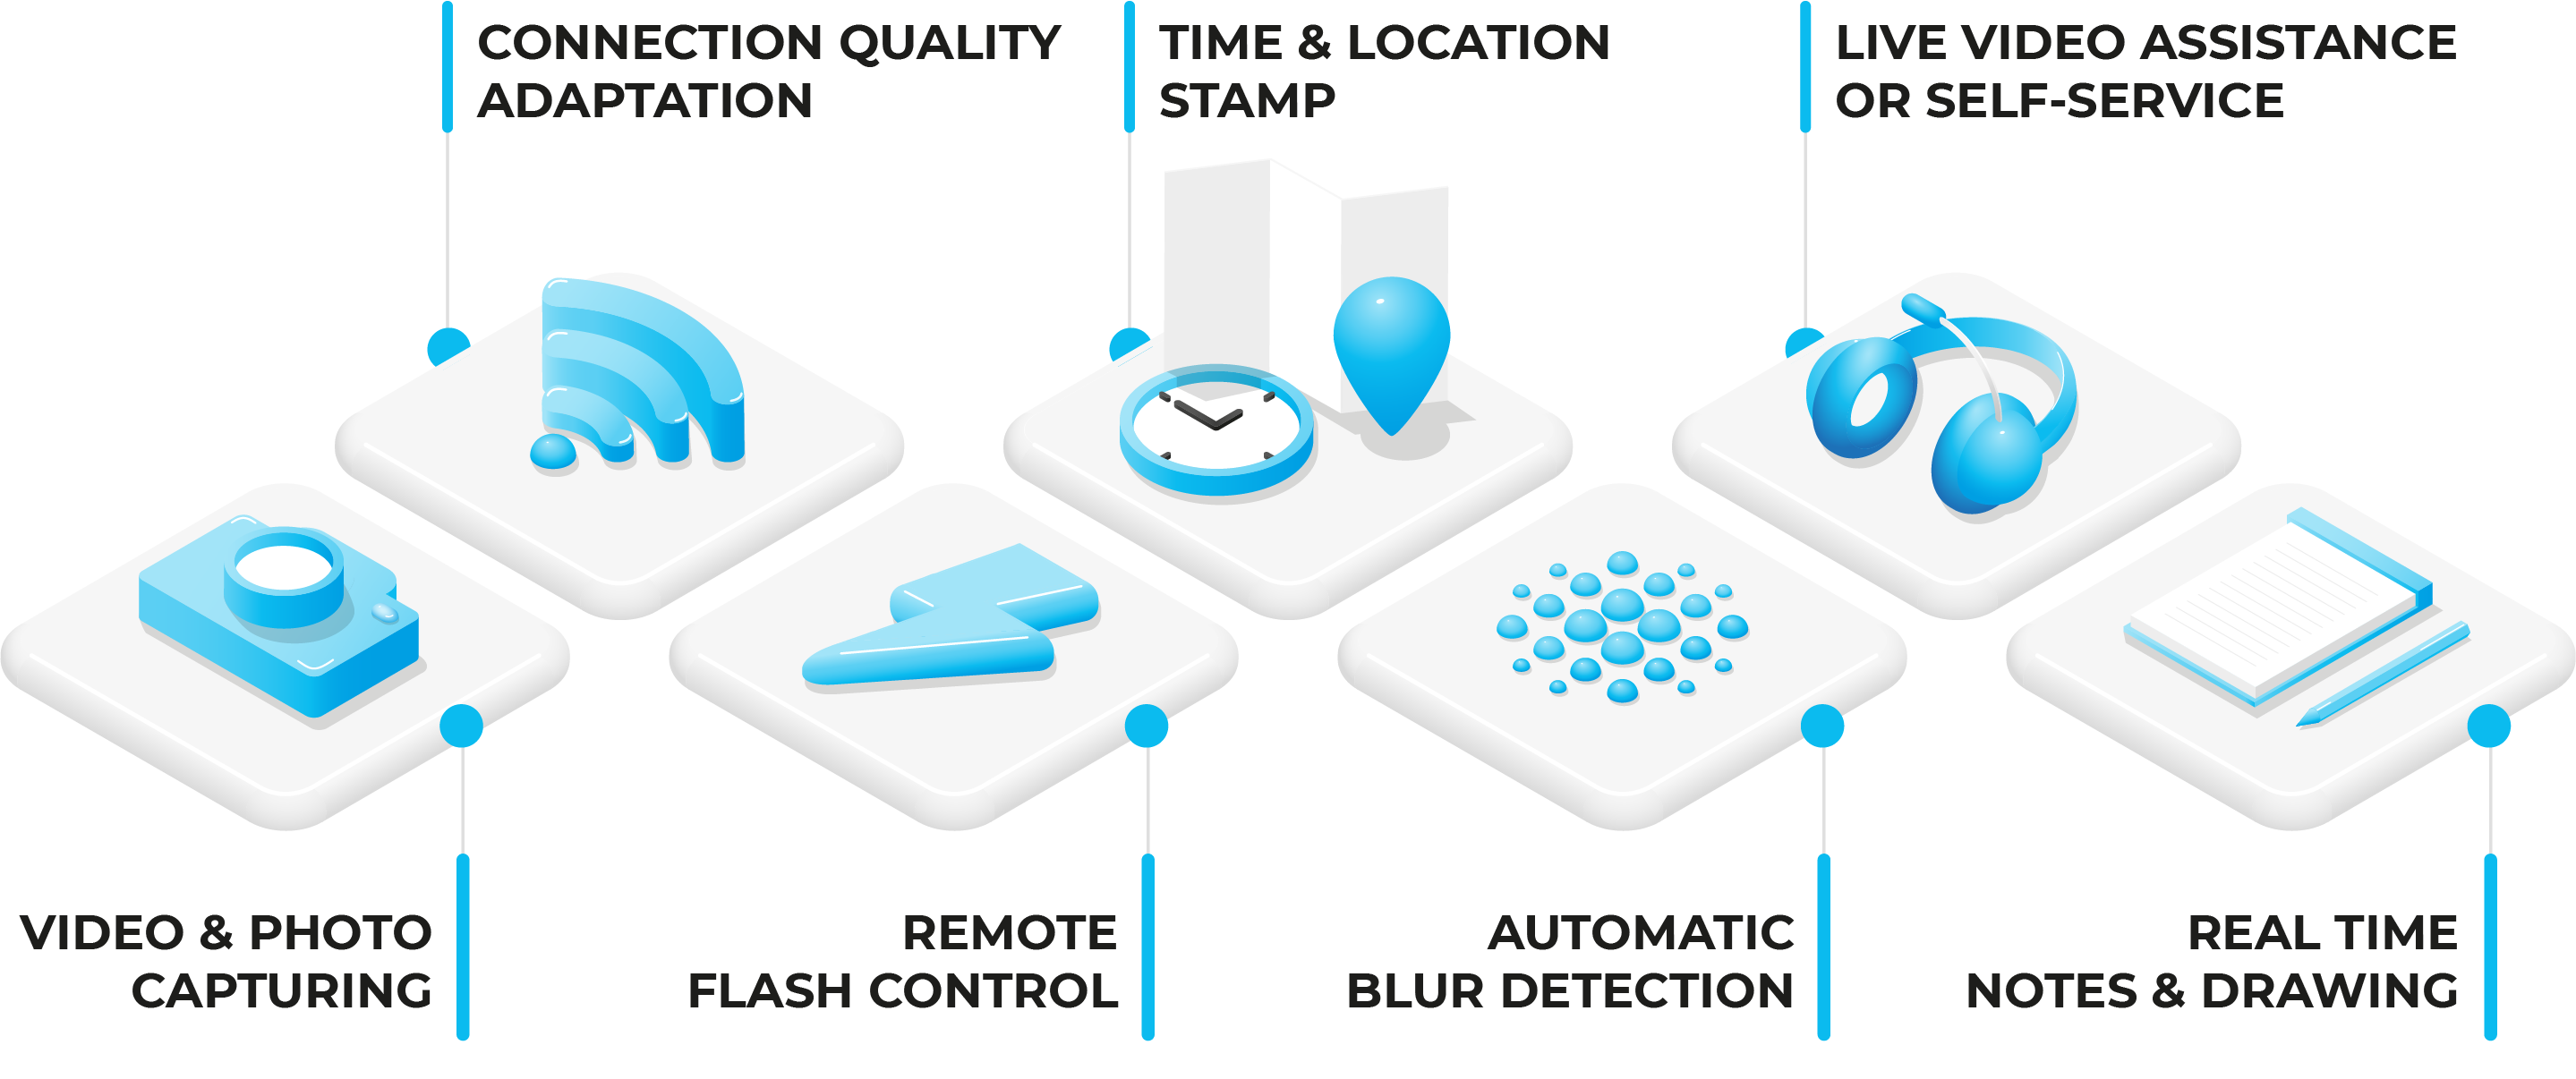 InstaClaim Remote Inspection features